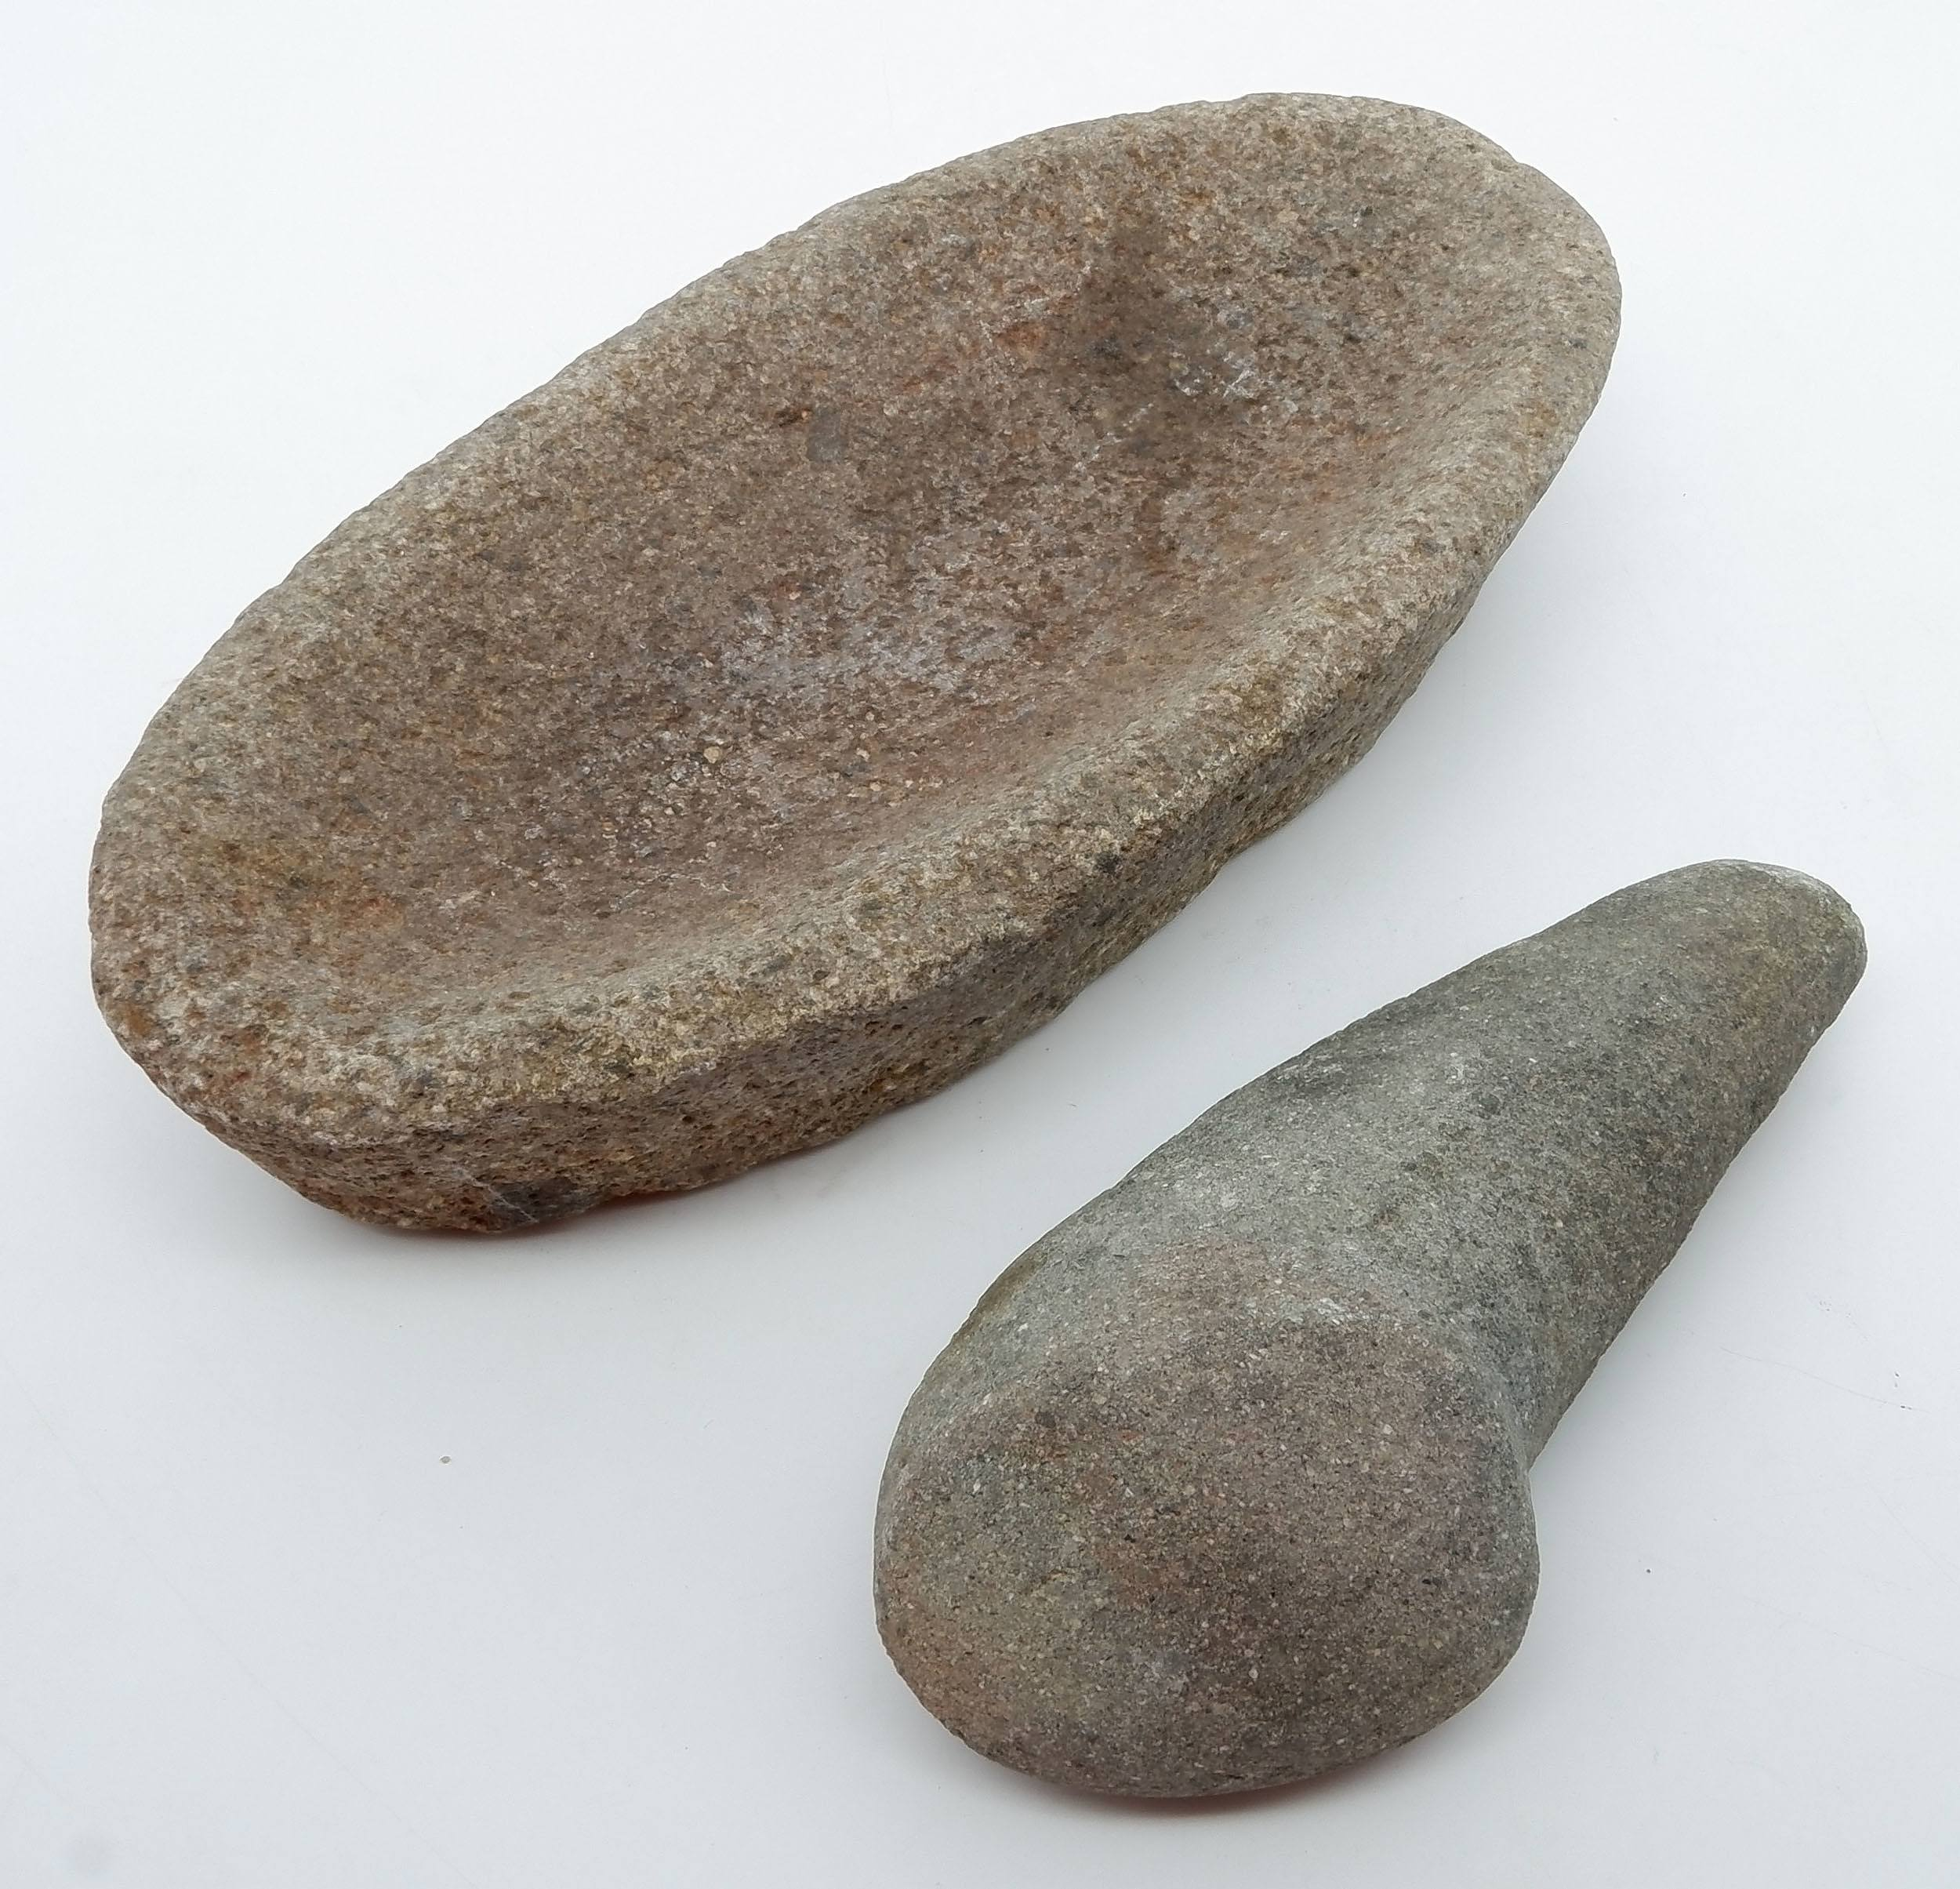 'Aboriginal Seed Grinding Stone and Pestle'